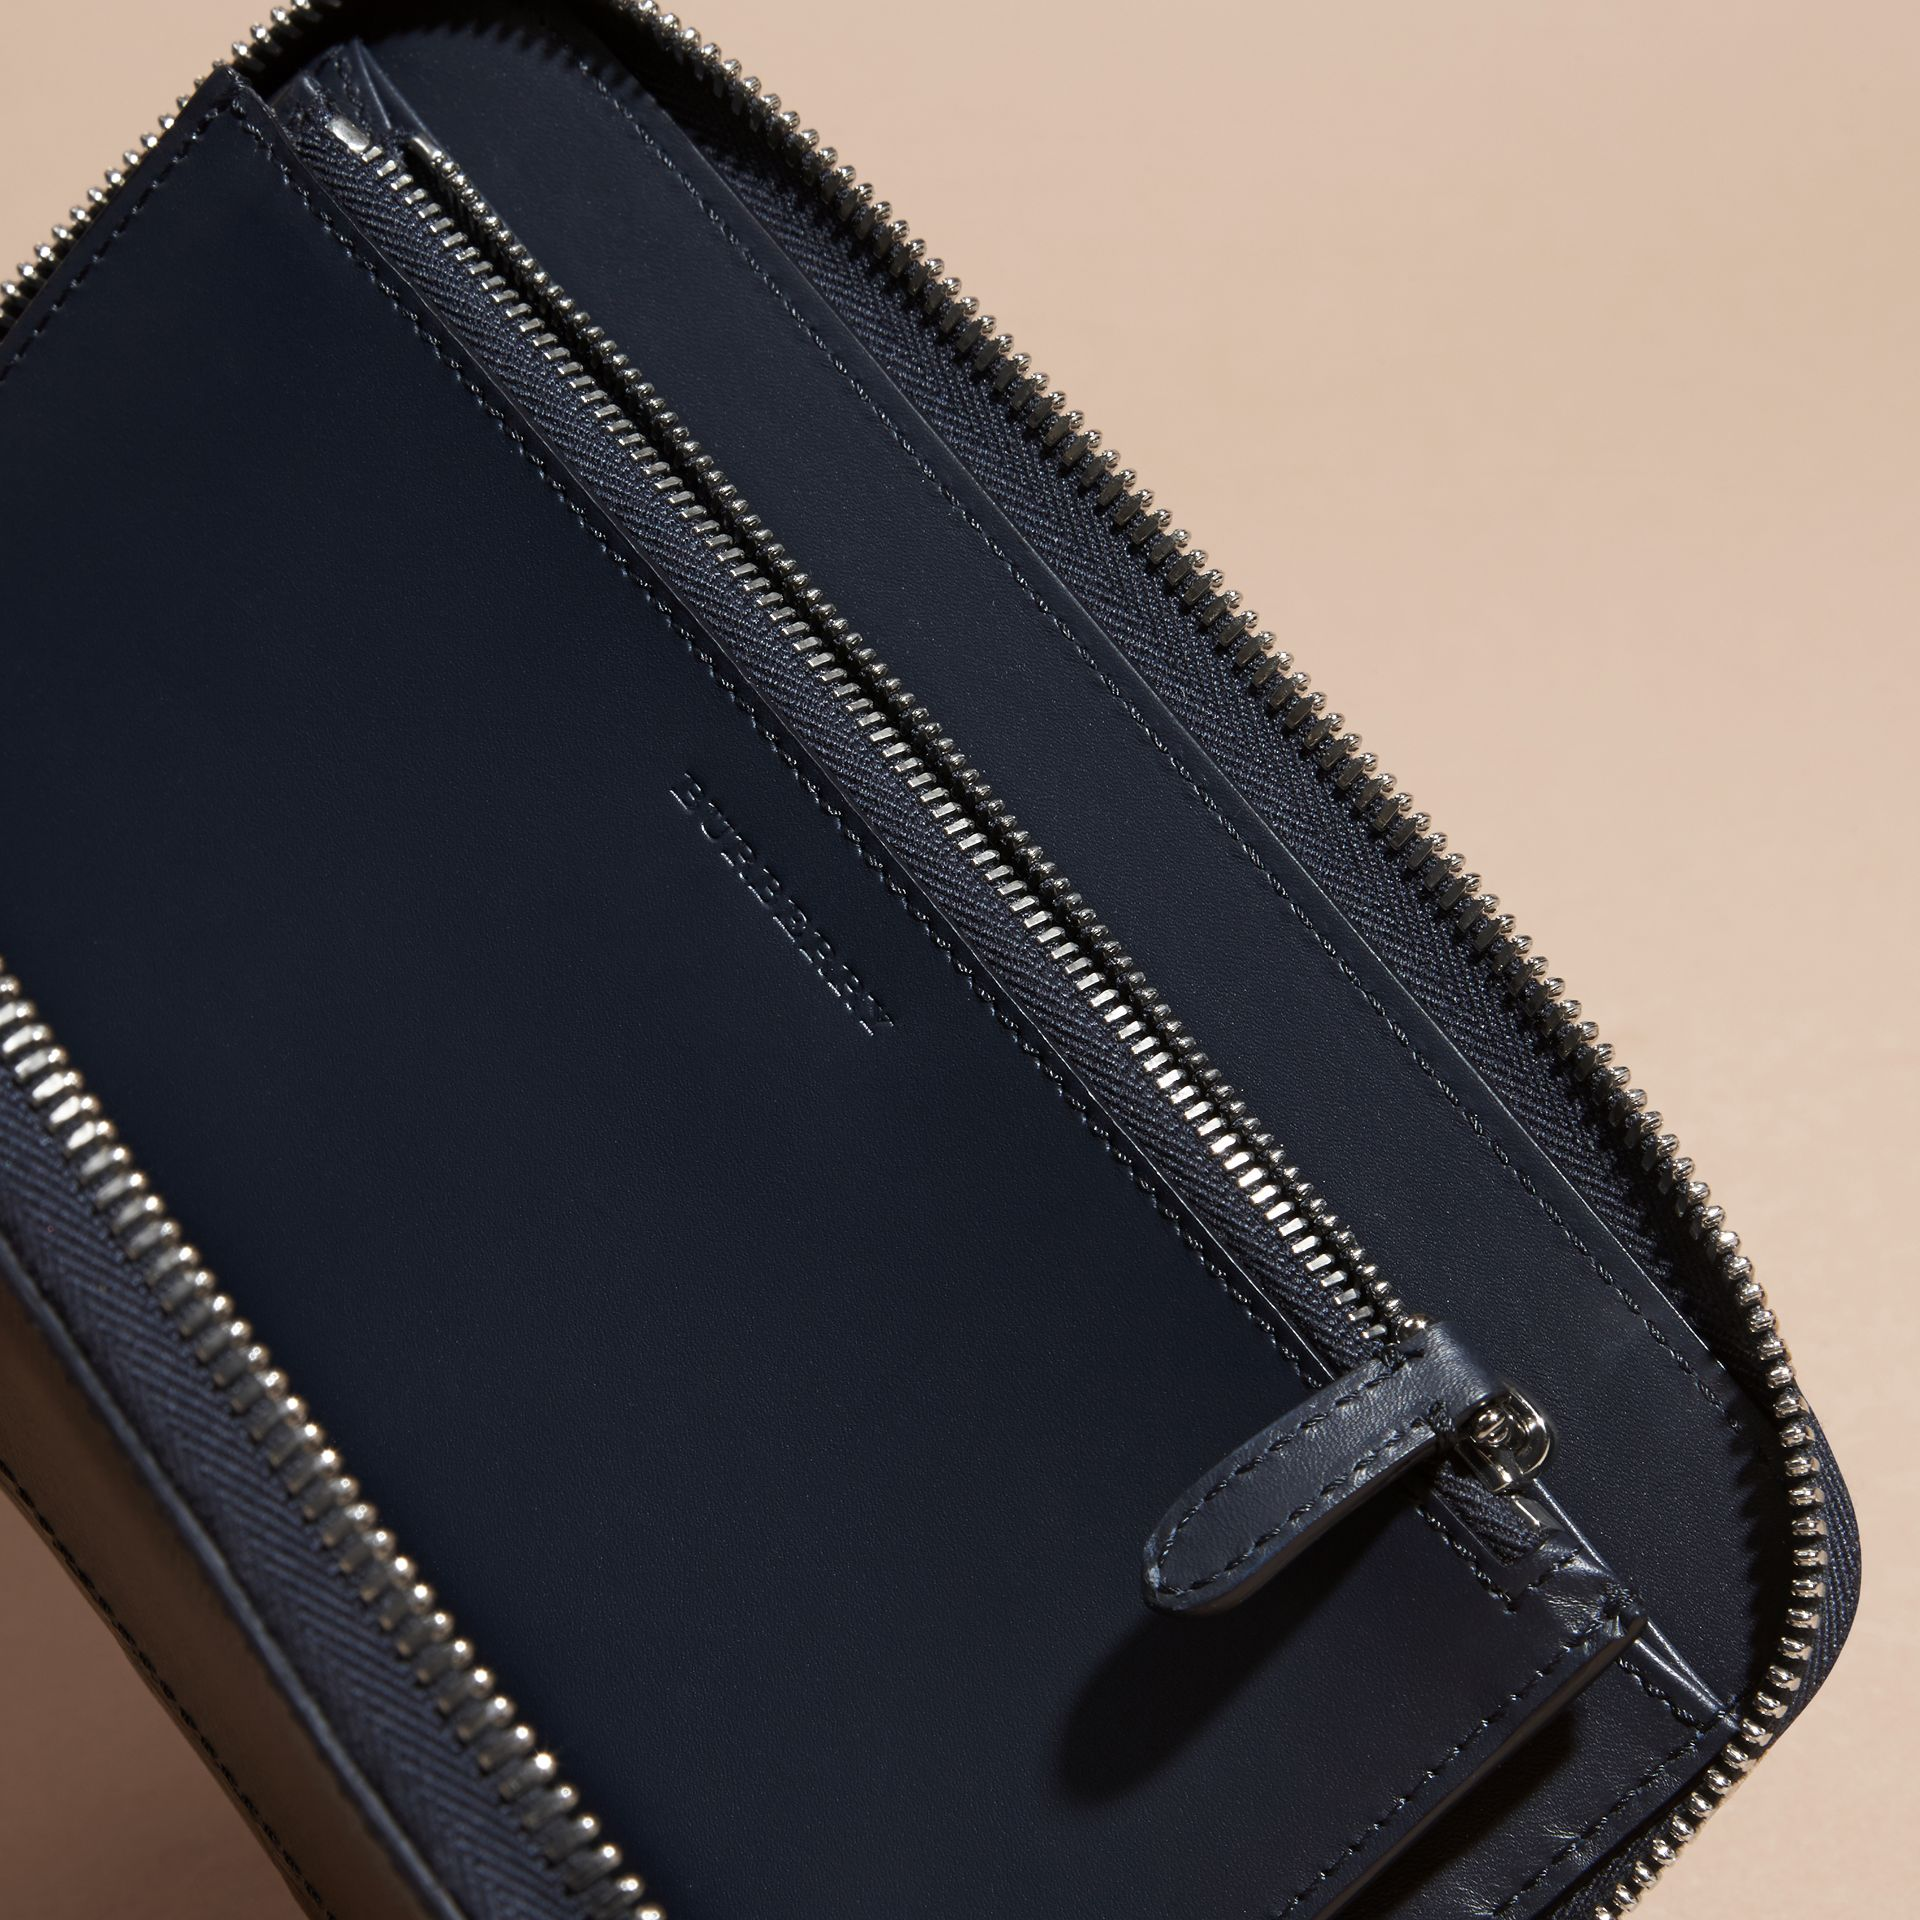 London Leather and Alligator Ziparound Wallet in Dark Navy - Men | Burberry United Kingdom - gallery image 5